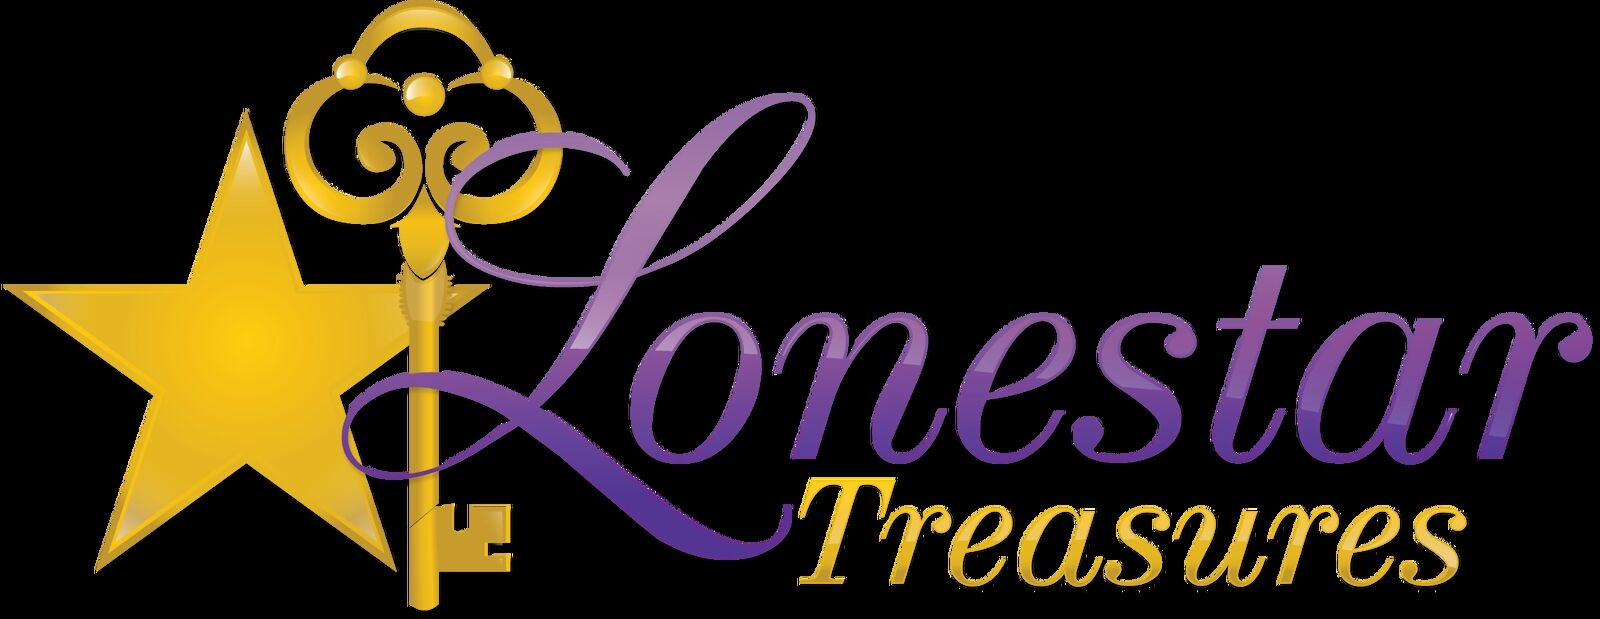 LONESTAR_TREASURES1